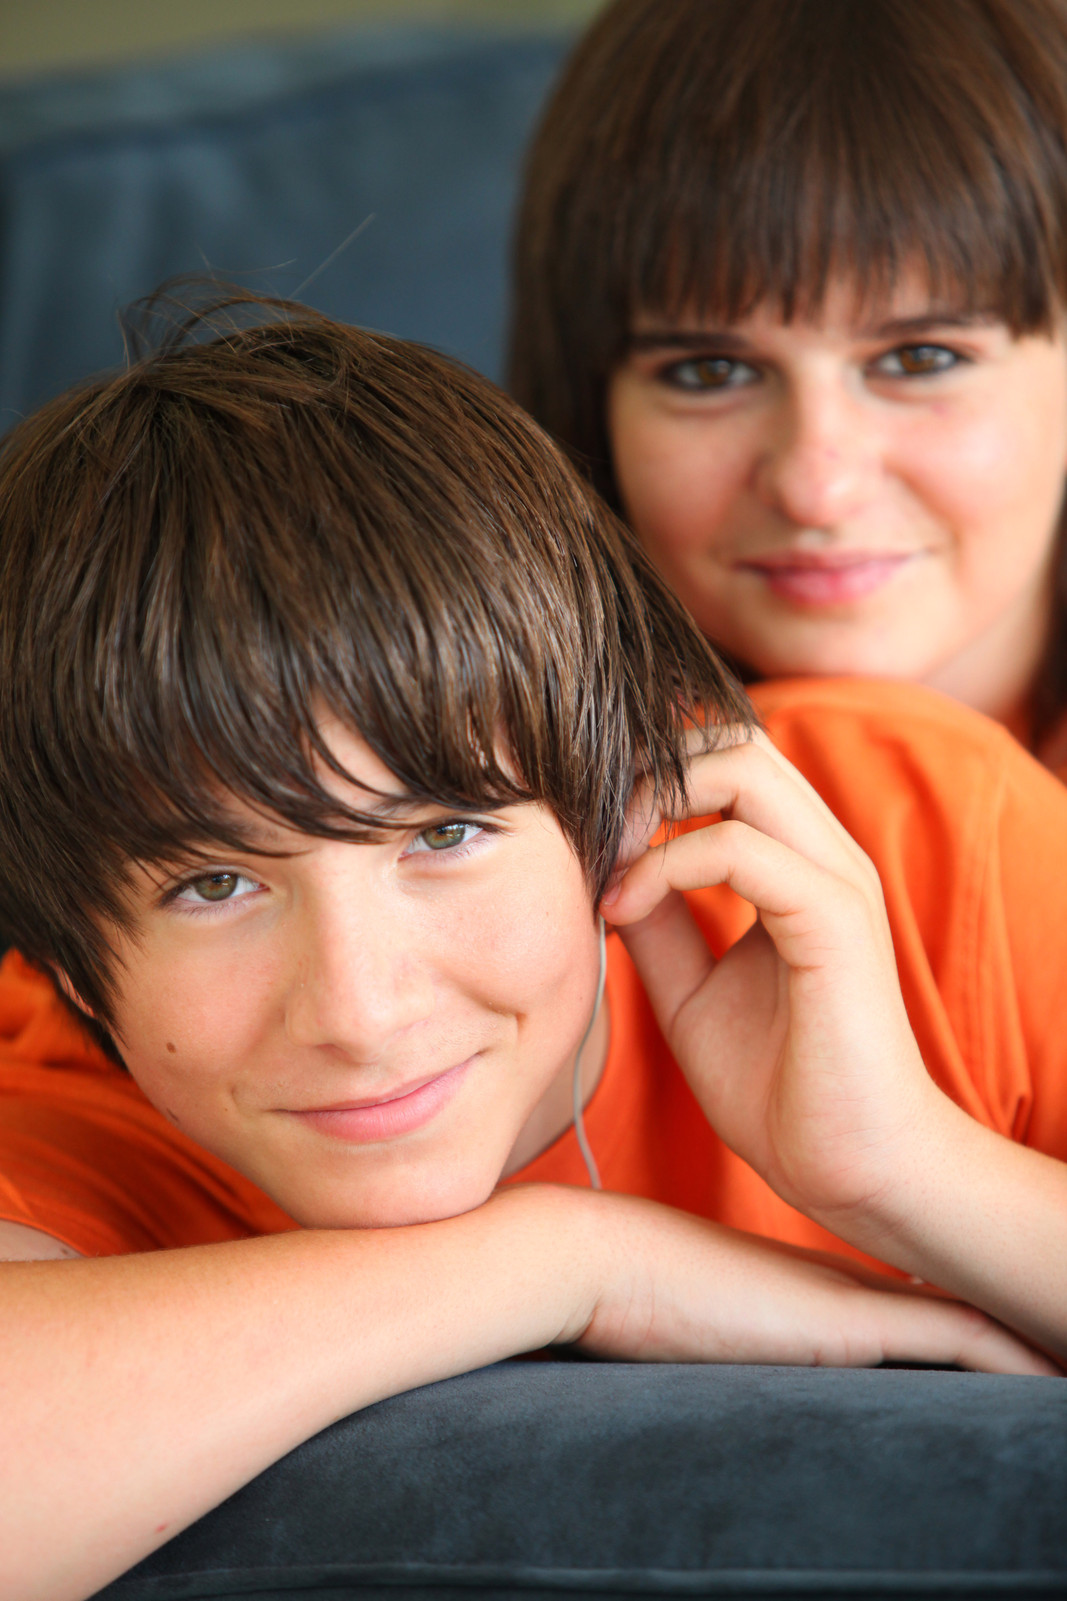 teens-brother-sister-orangeshirts.jpg